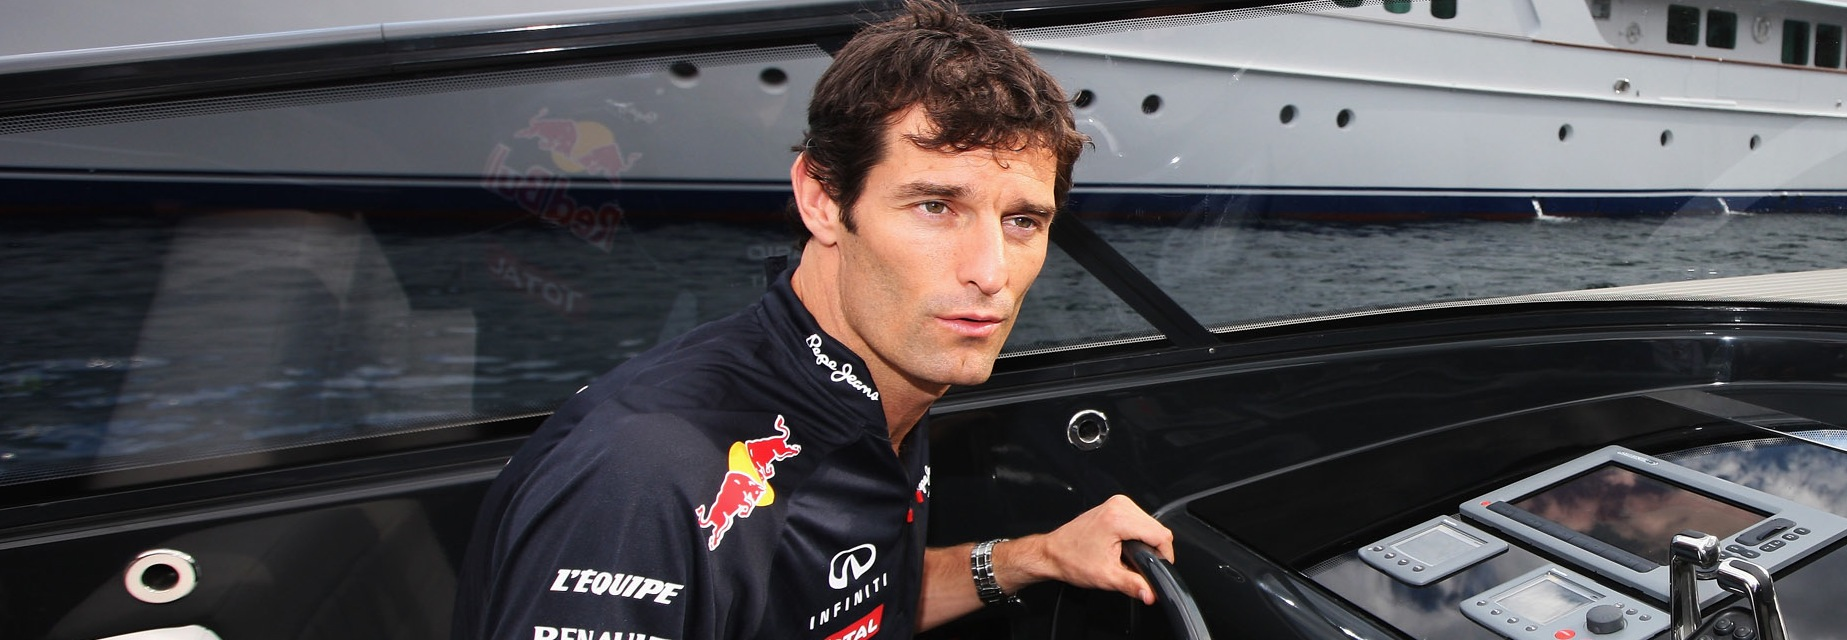 Casio-Edifice Launch mit Mark Webber